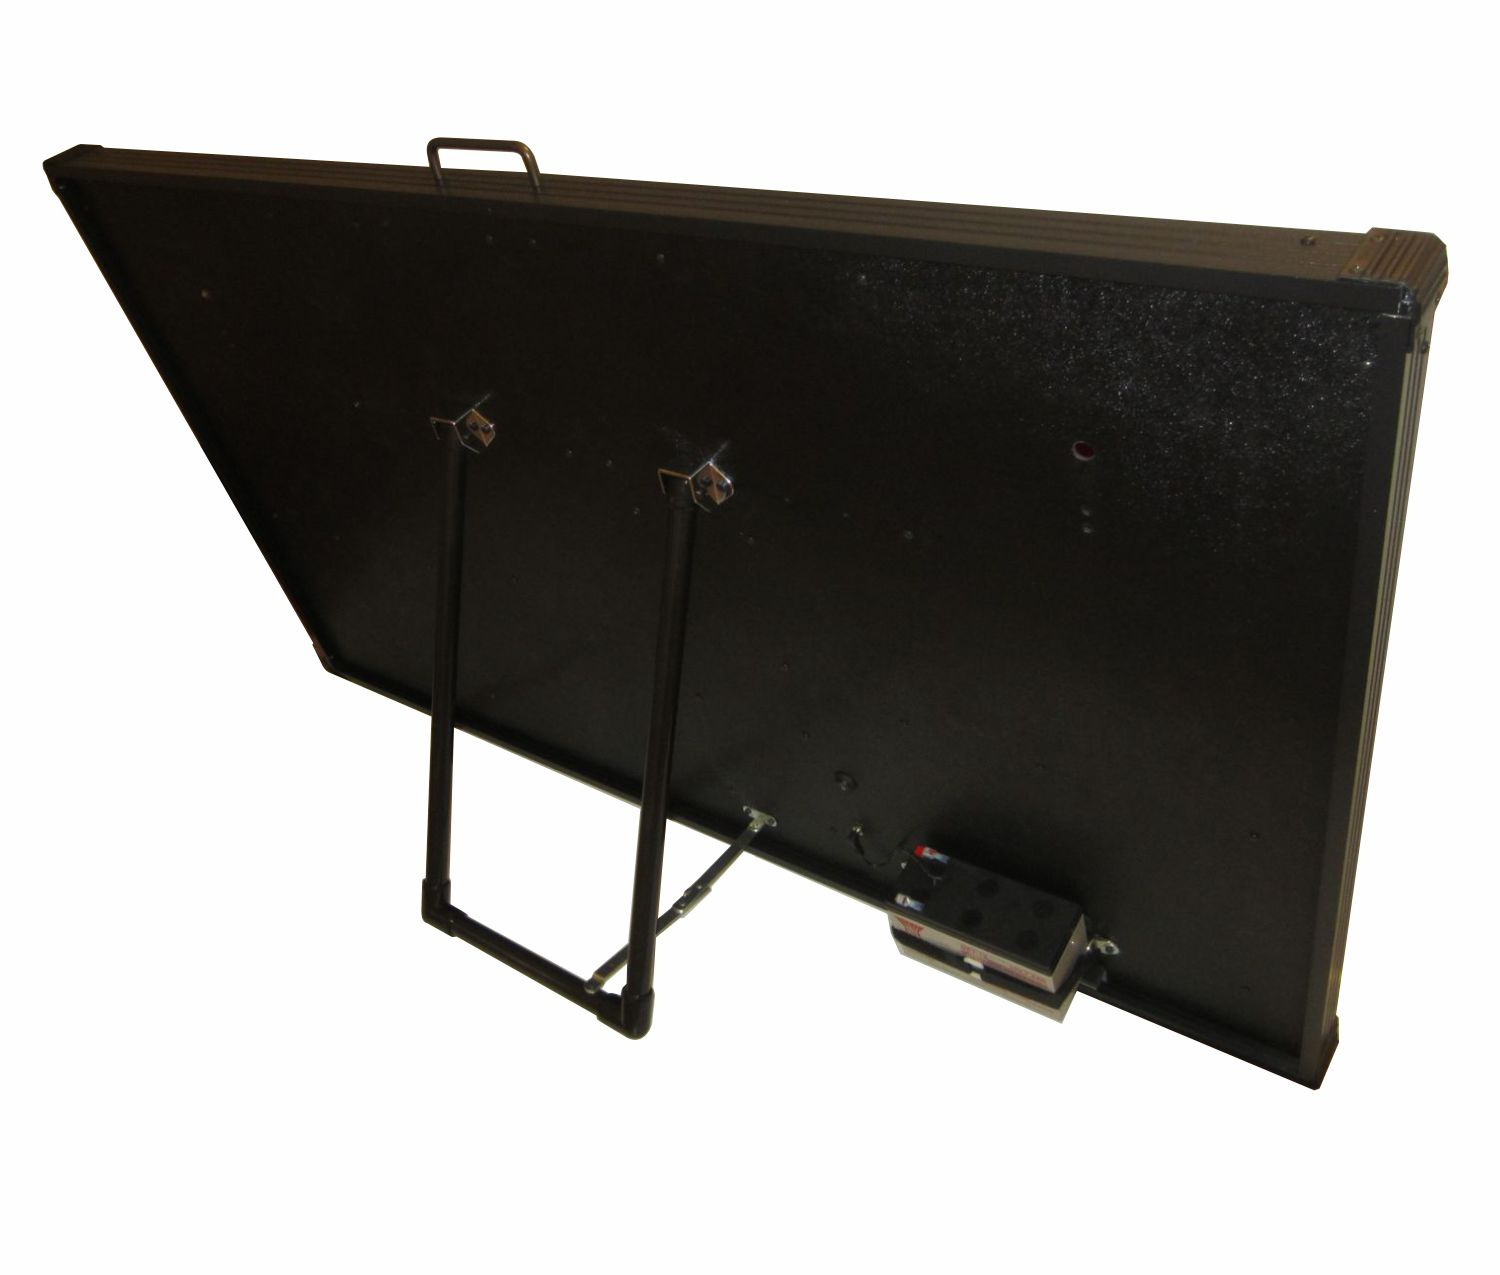 SNT-800M ultra large portable scoreboard rear-view